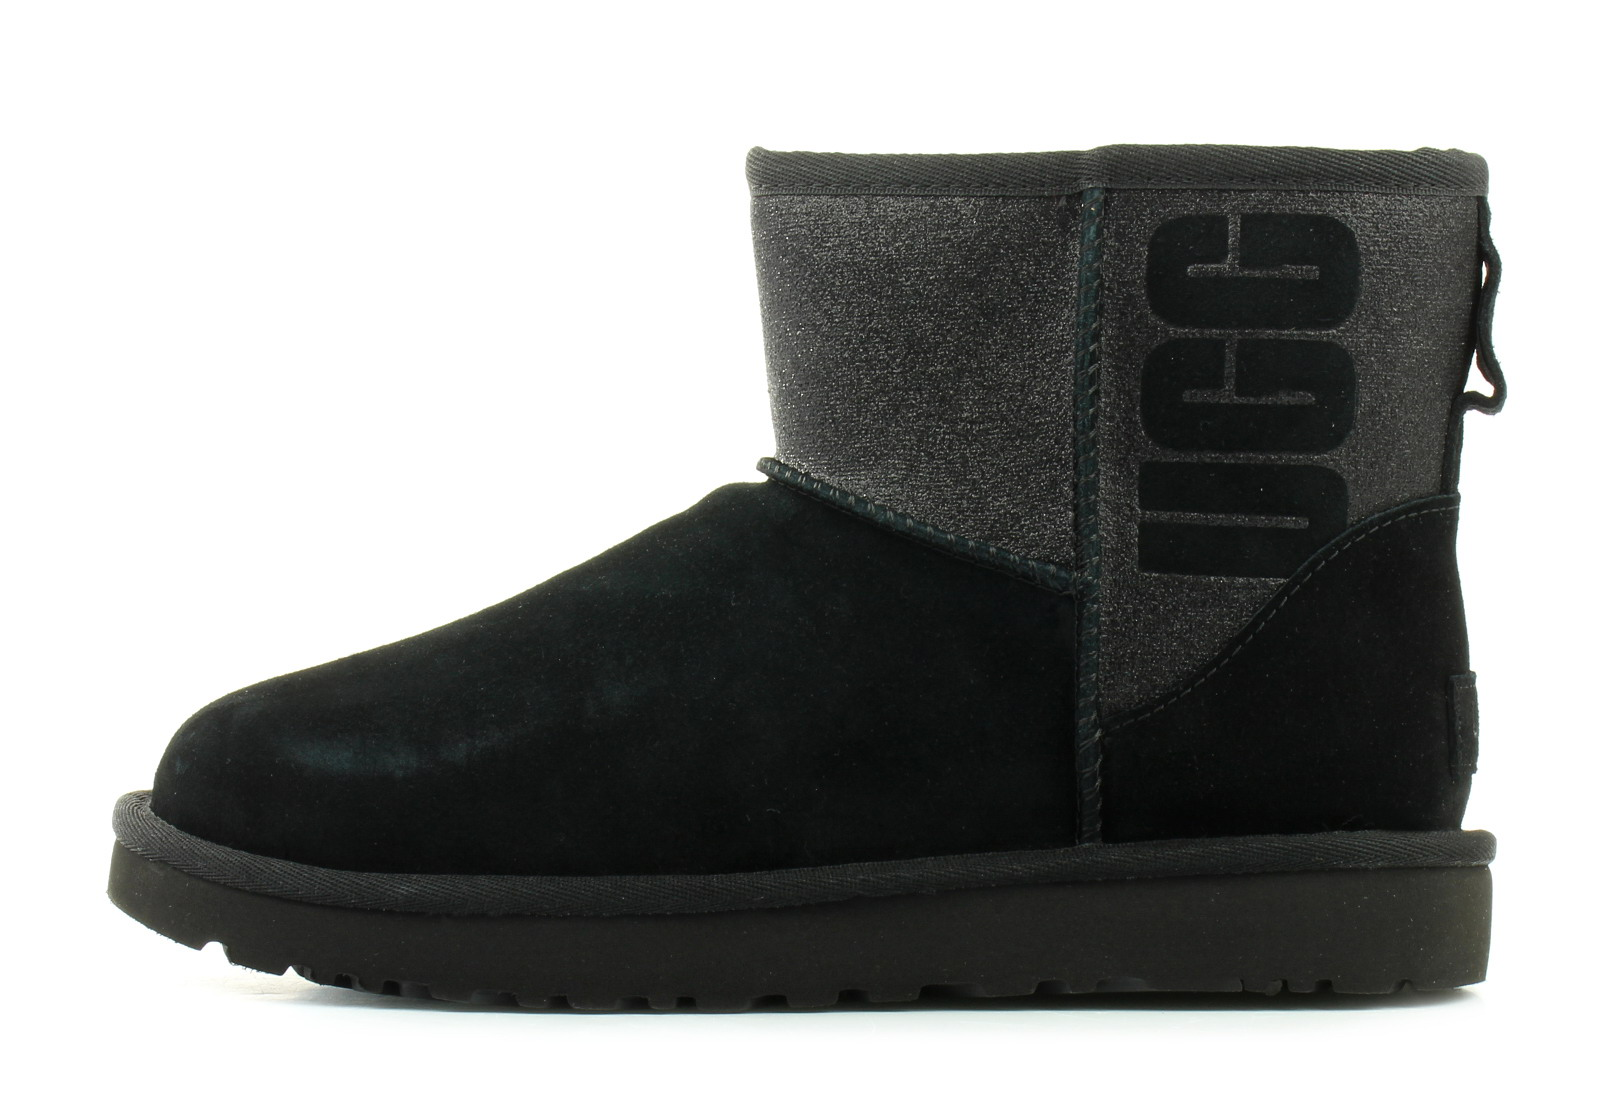 ugg boots classic mini ugg sparkle 1098452 blk online shop for rh officeshoescee com